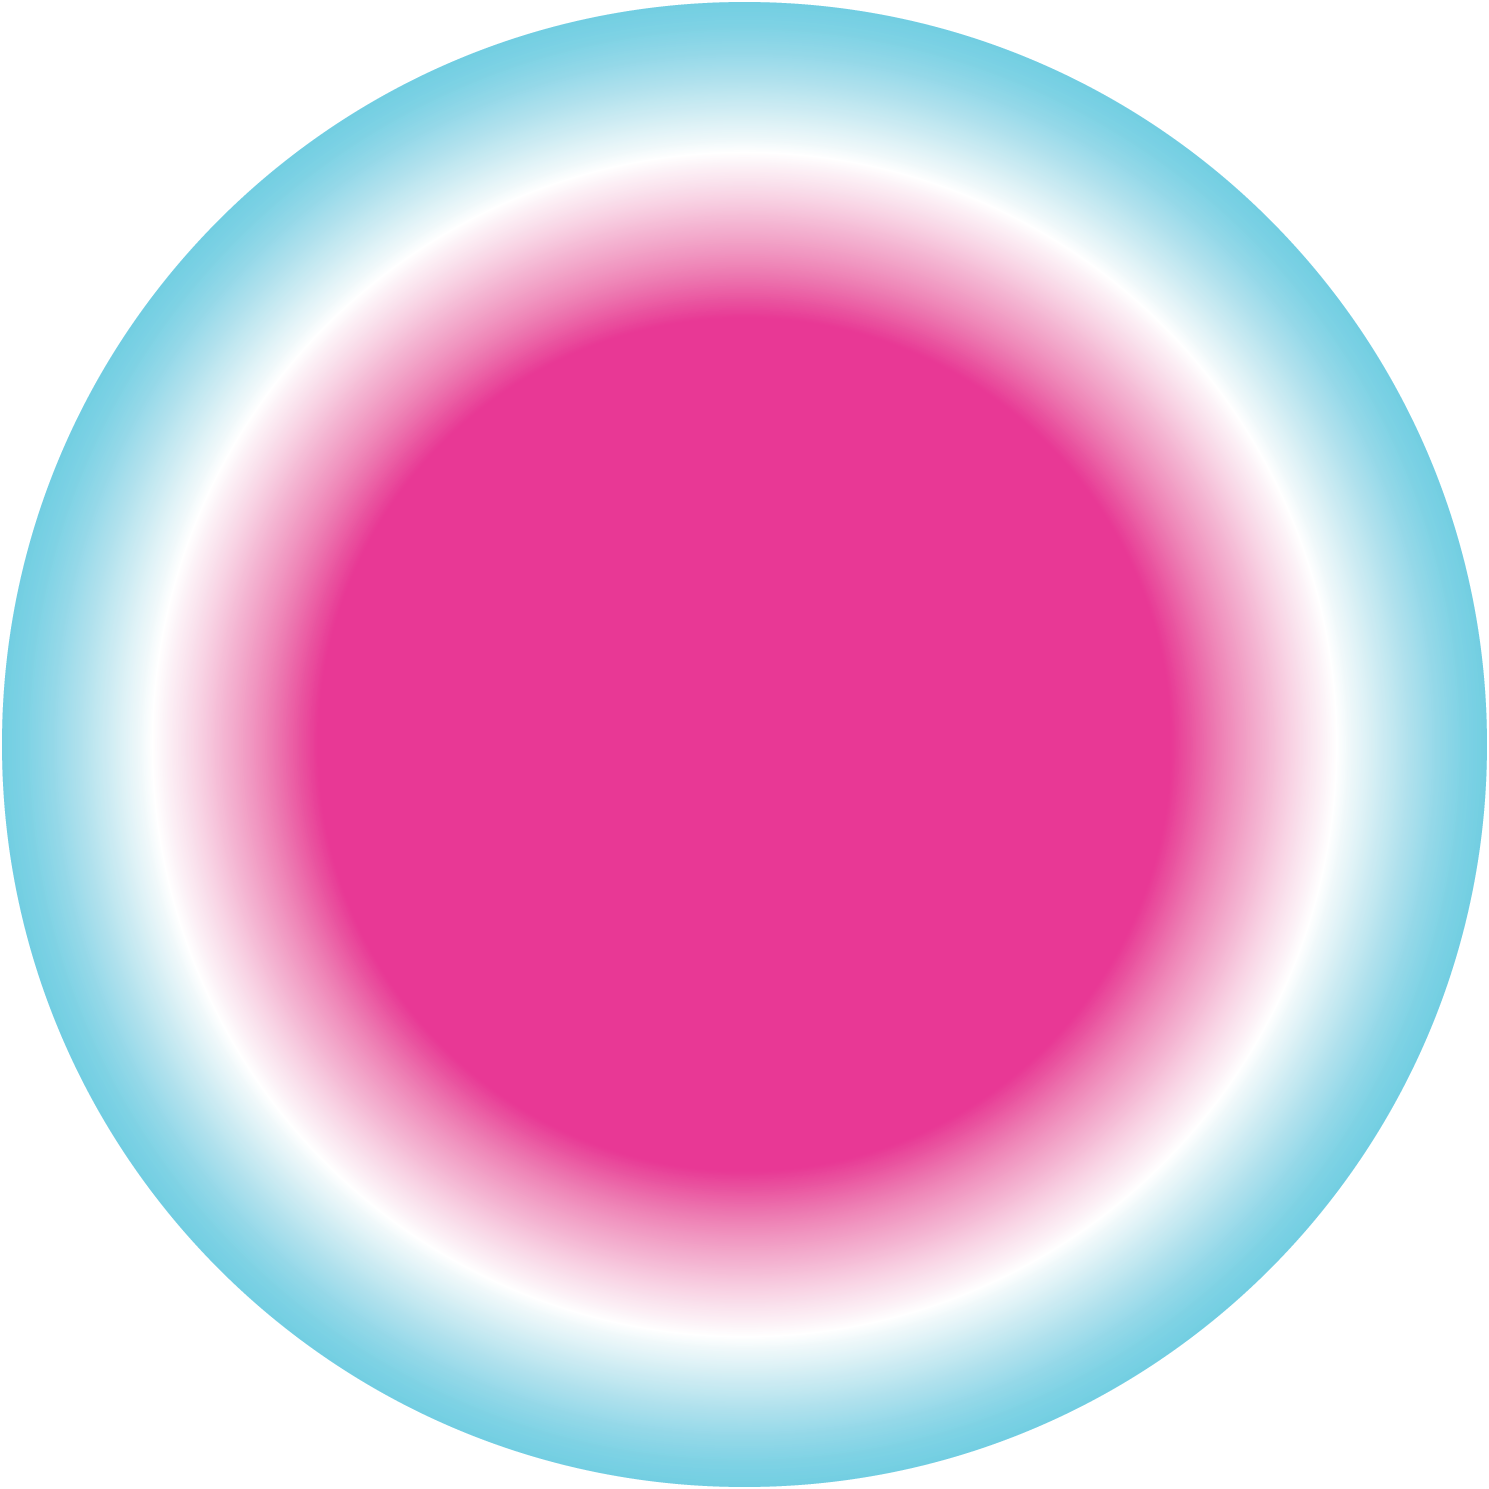 Breathing visualization #3: blue ring + pink orb which triggers w/ heart beat